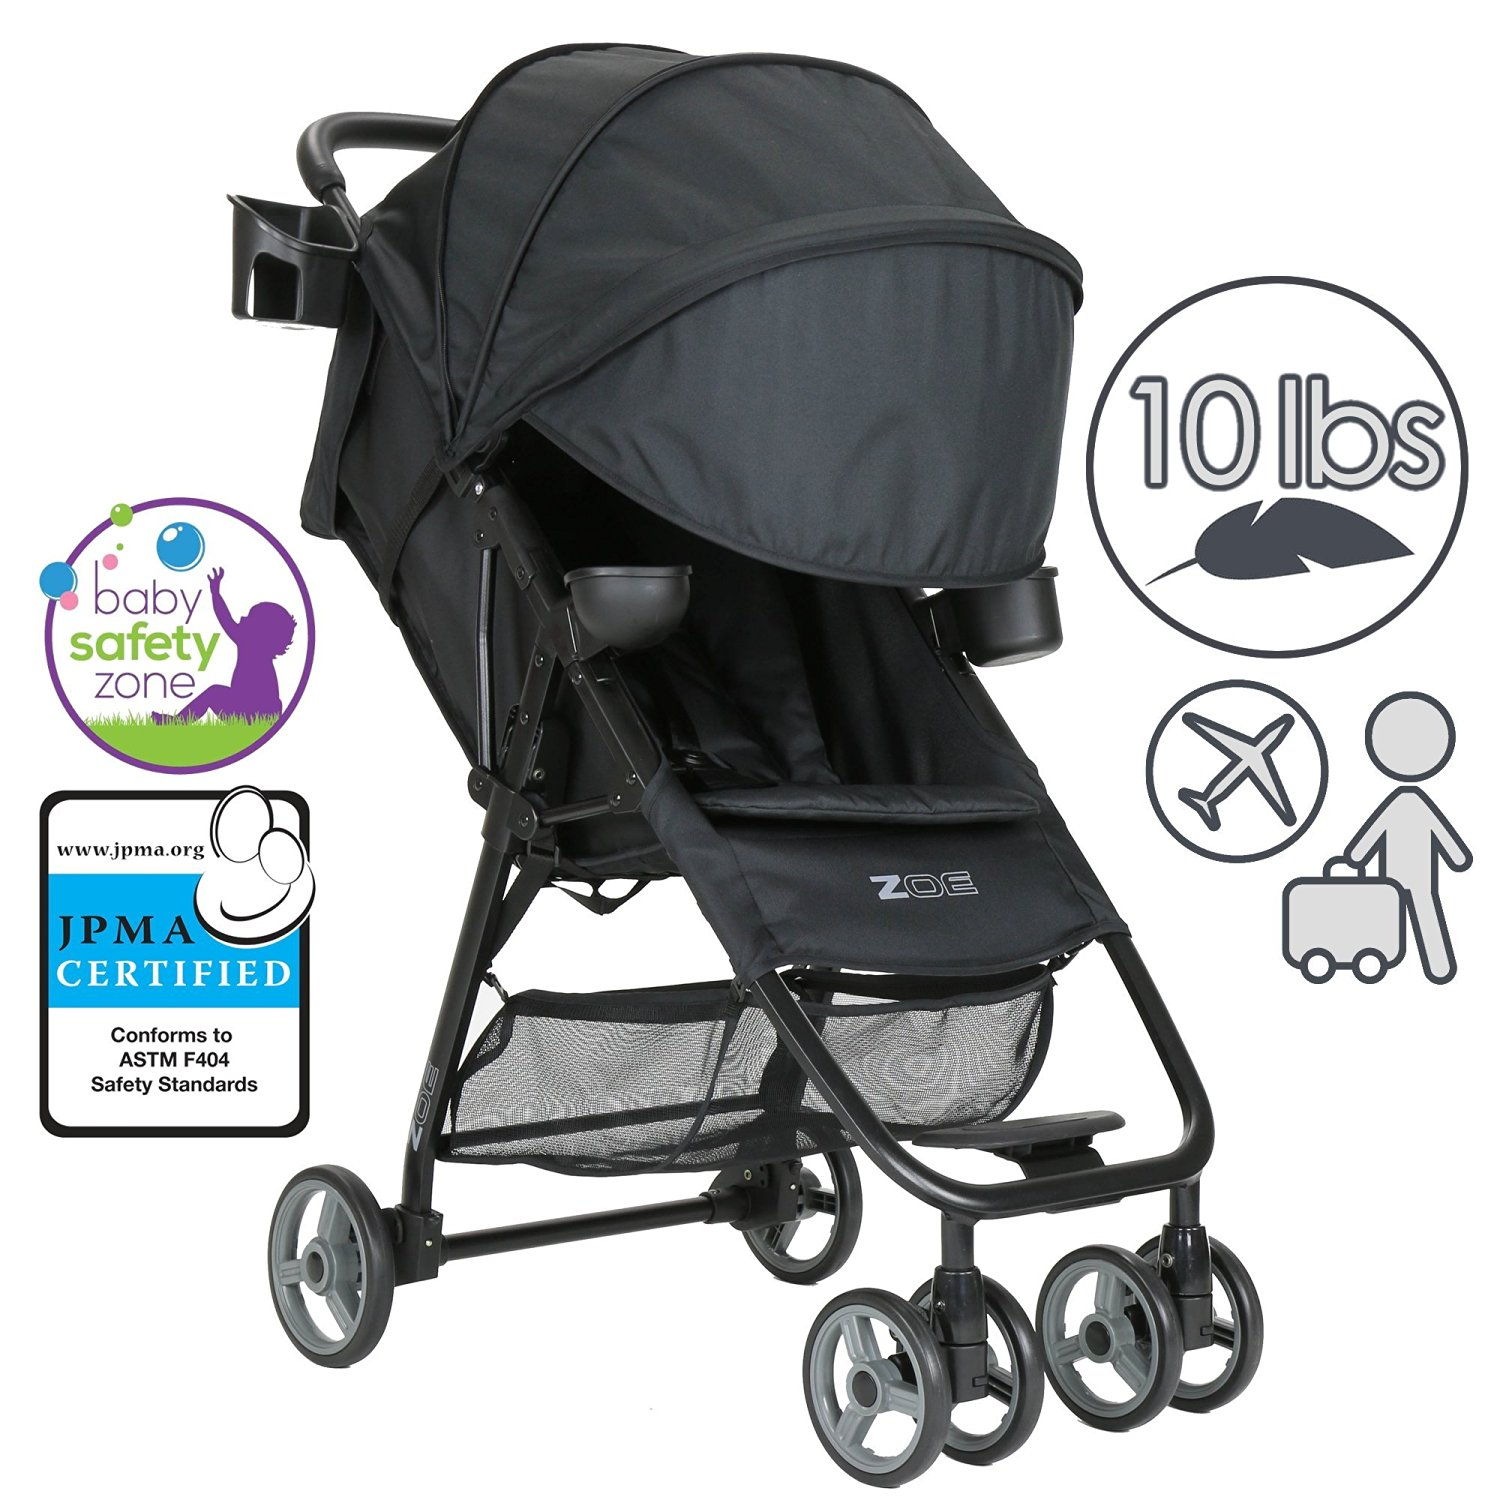 ZOE XL1 BEST Xtra Lightweight Travel & Everyday Umbrella Stroller System